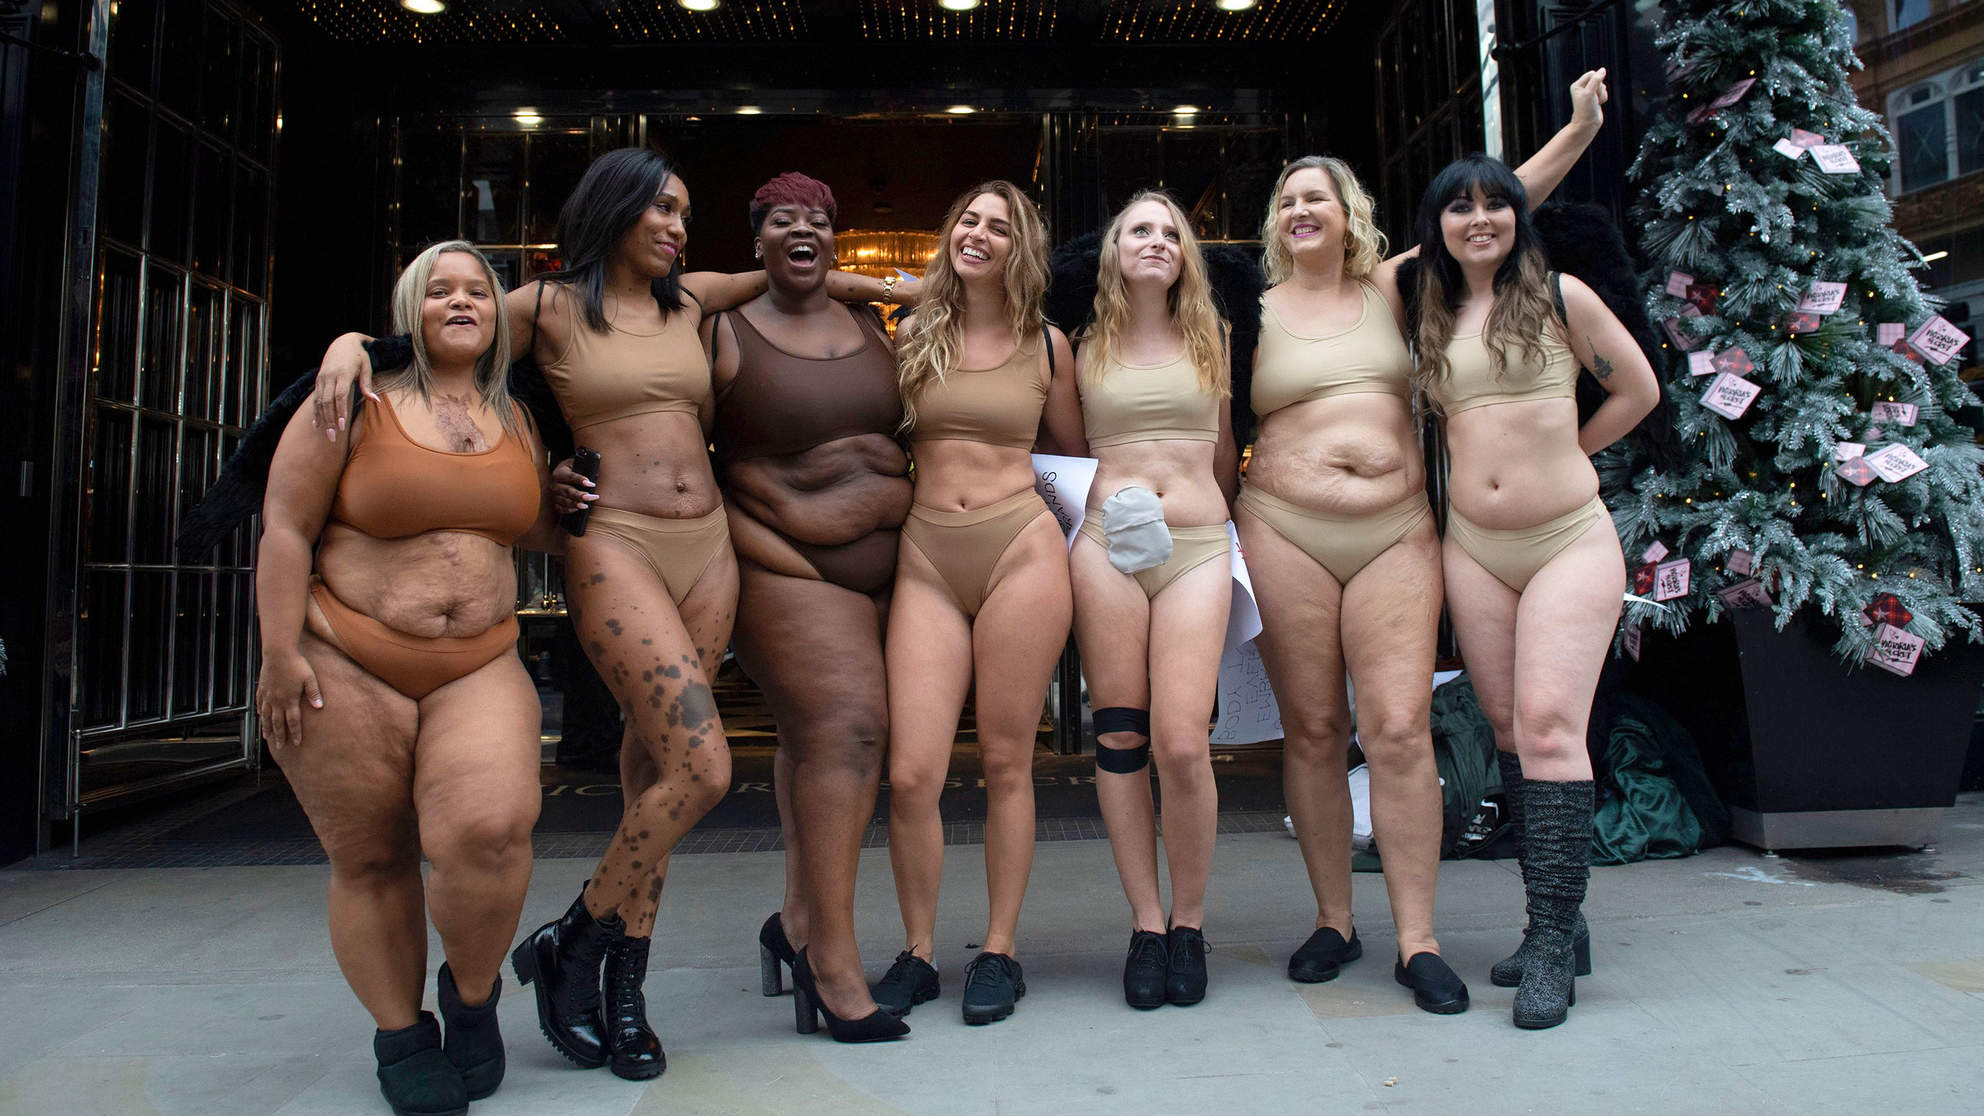 e177ff0d85ad Women Strip Down to Their Underwear to Protest Outside Victoria's Secret  Store in London